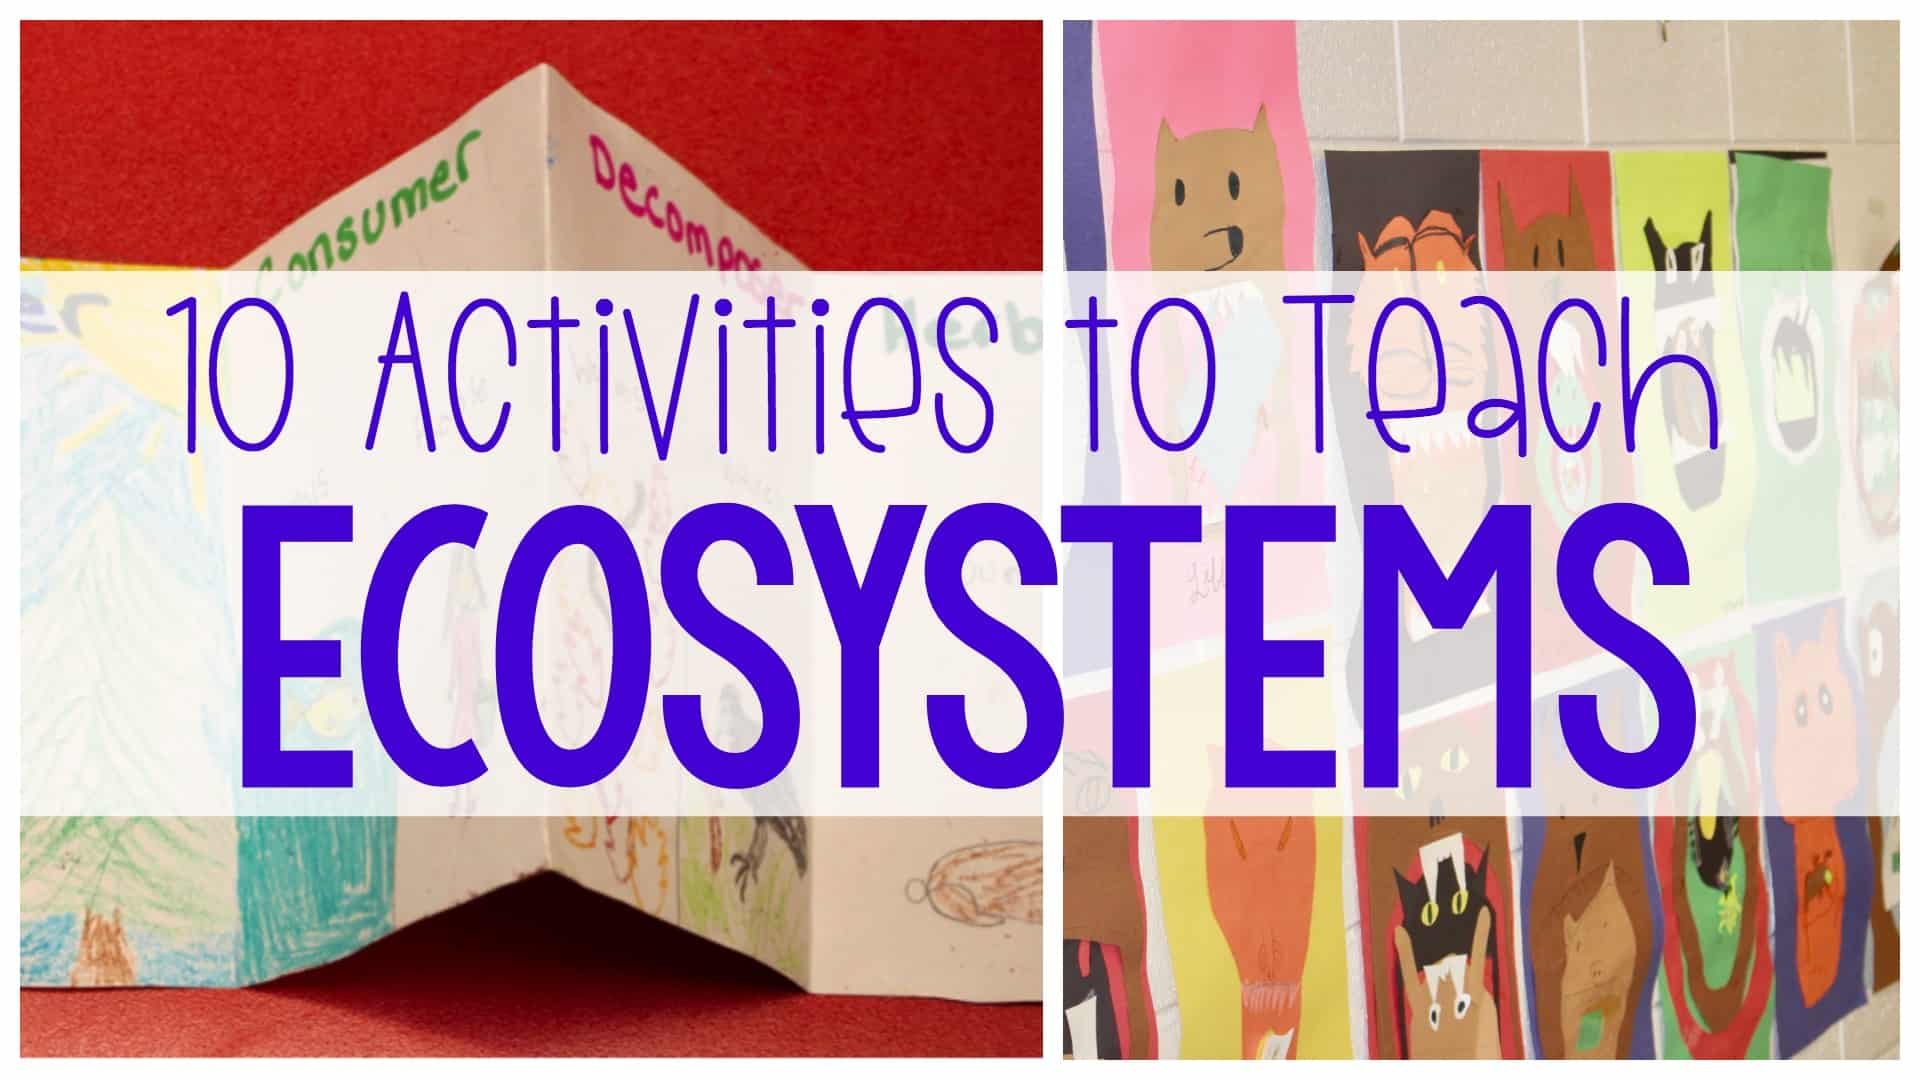 hight resolution of 10 Activities to Teach Ecosystems - Ashleigh's Education Journey